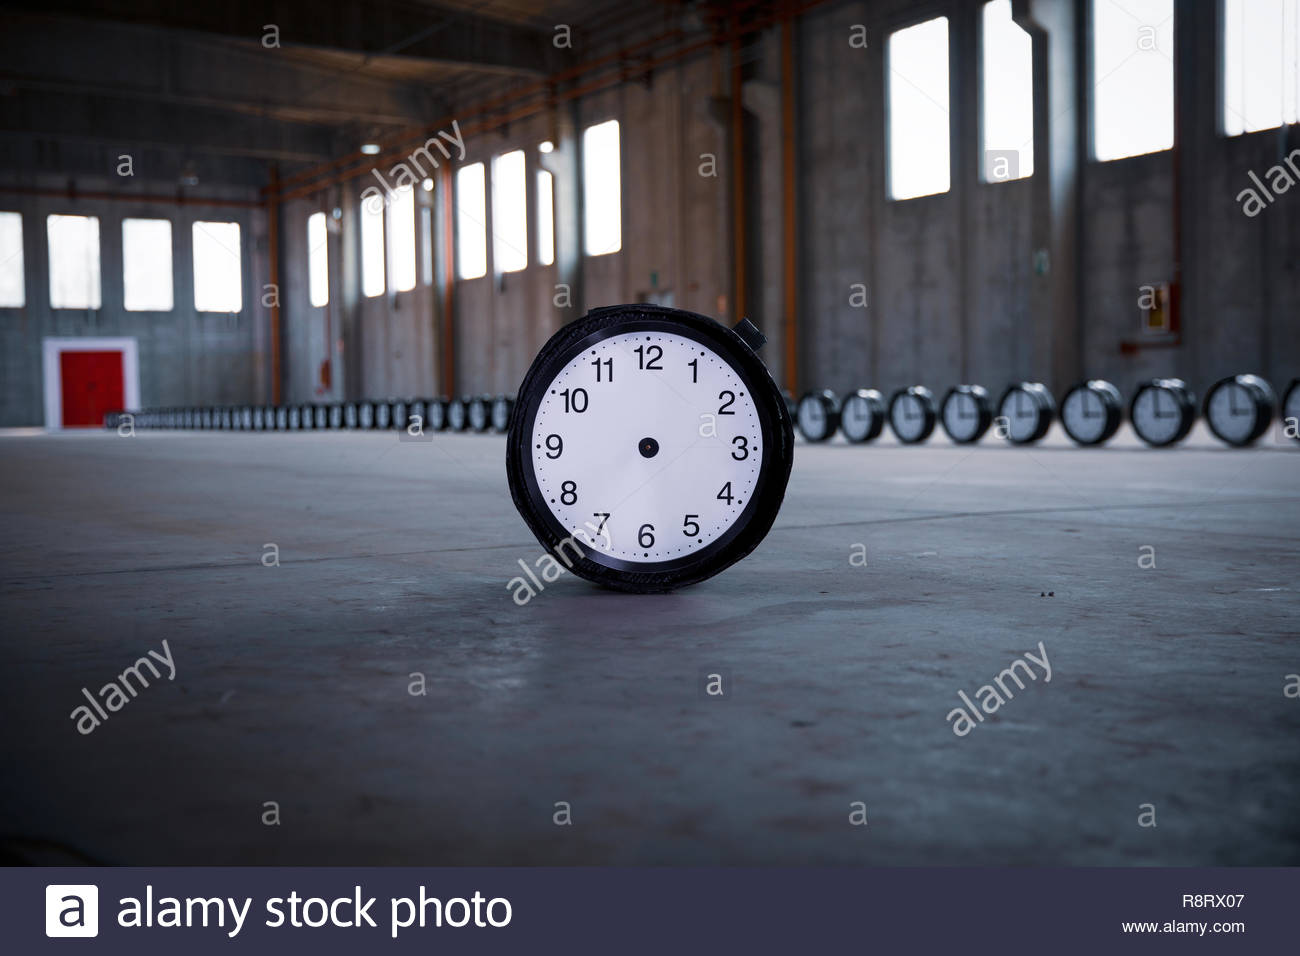 A  clock with no hands stands in the center of the foreground, with 50 identical clocks settled in a row pointing to a red door in an empty factory. - Stock Image